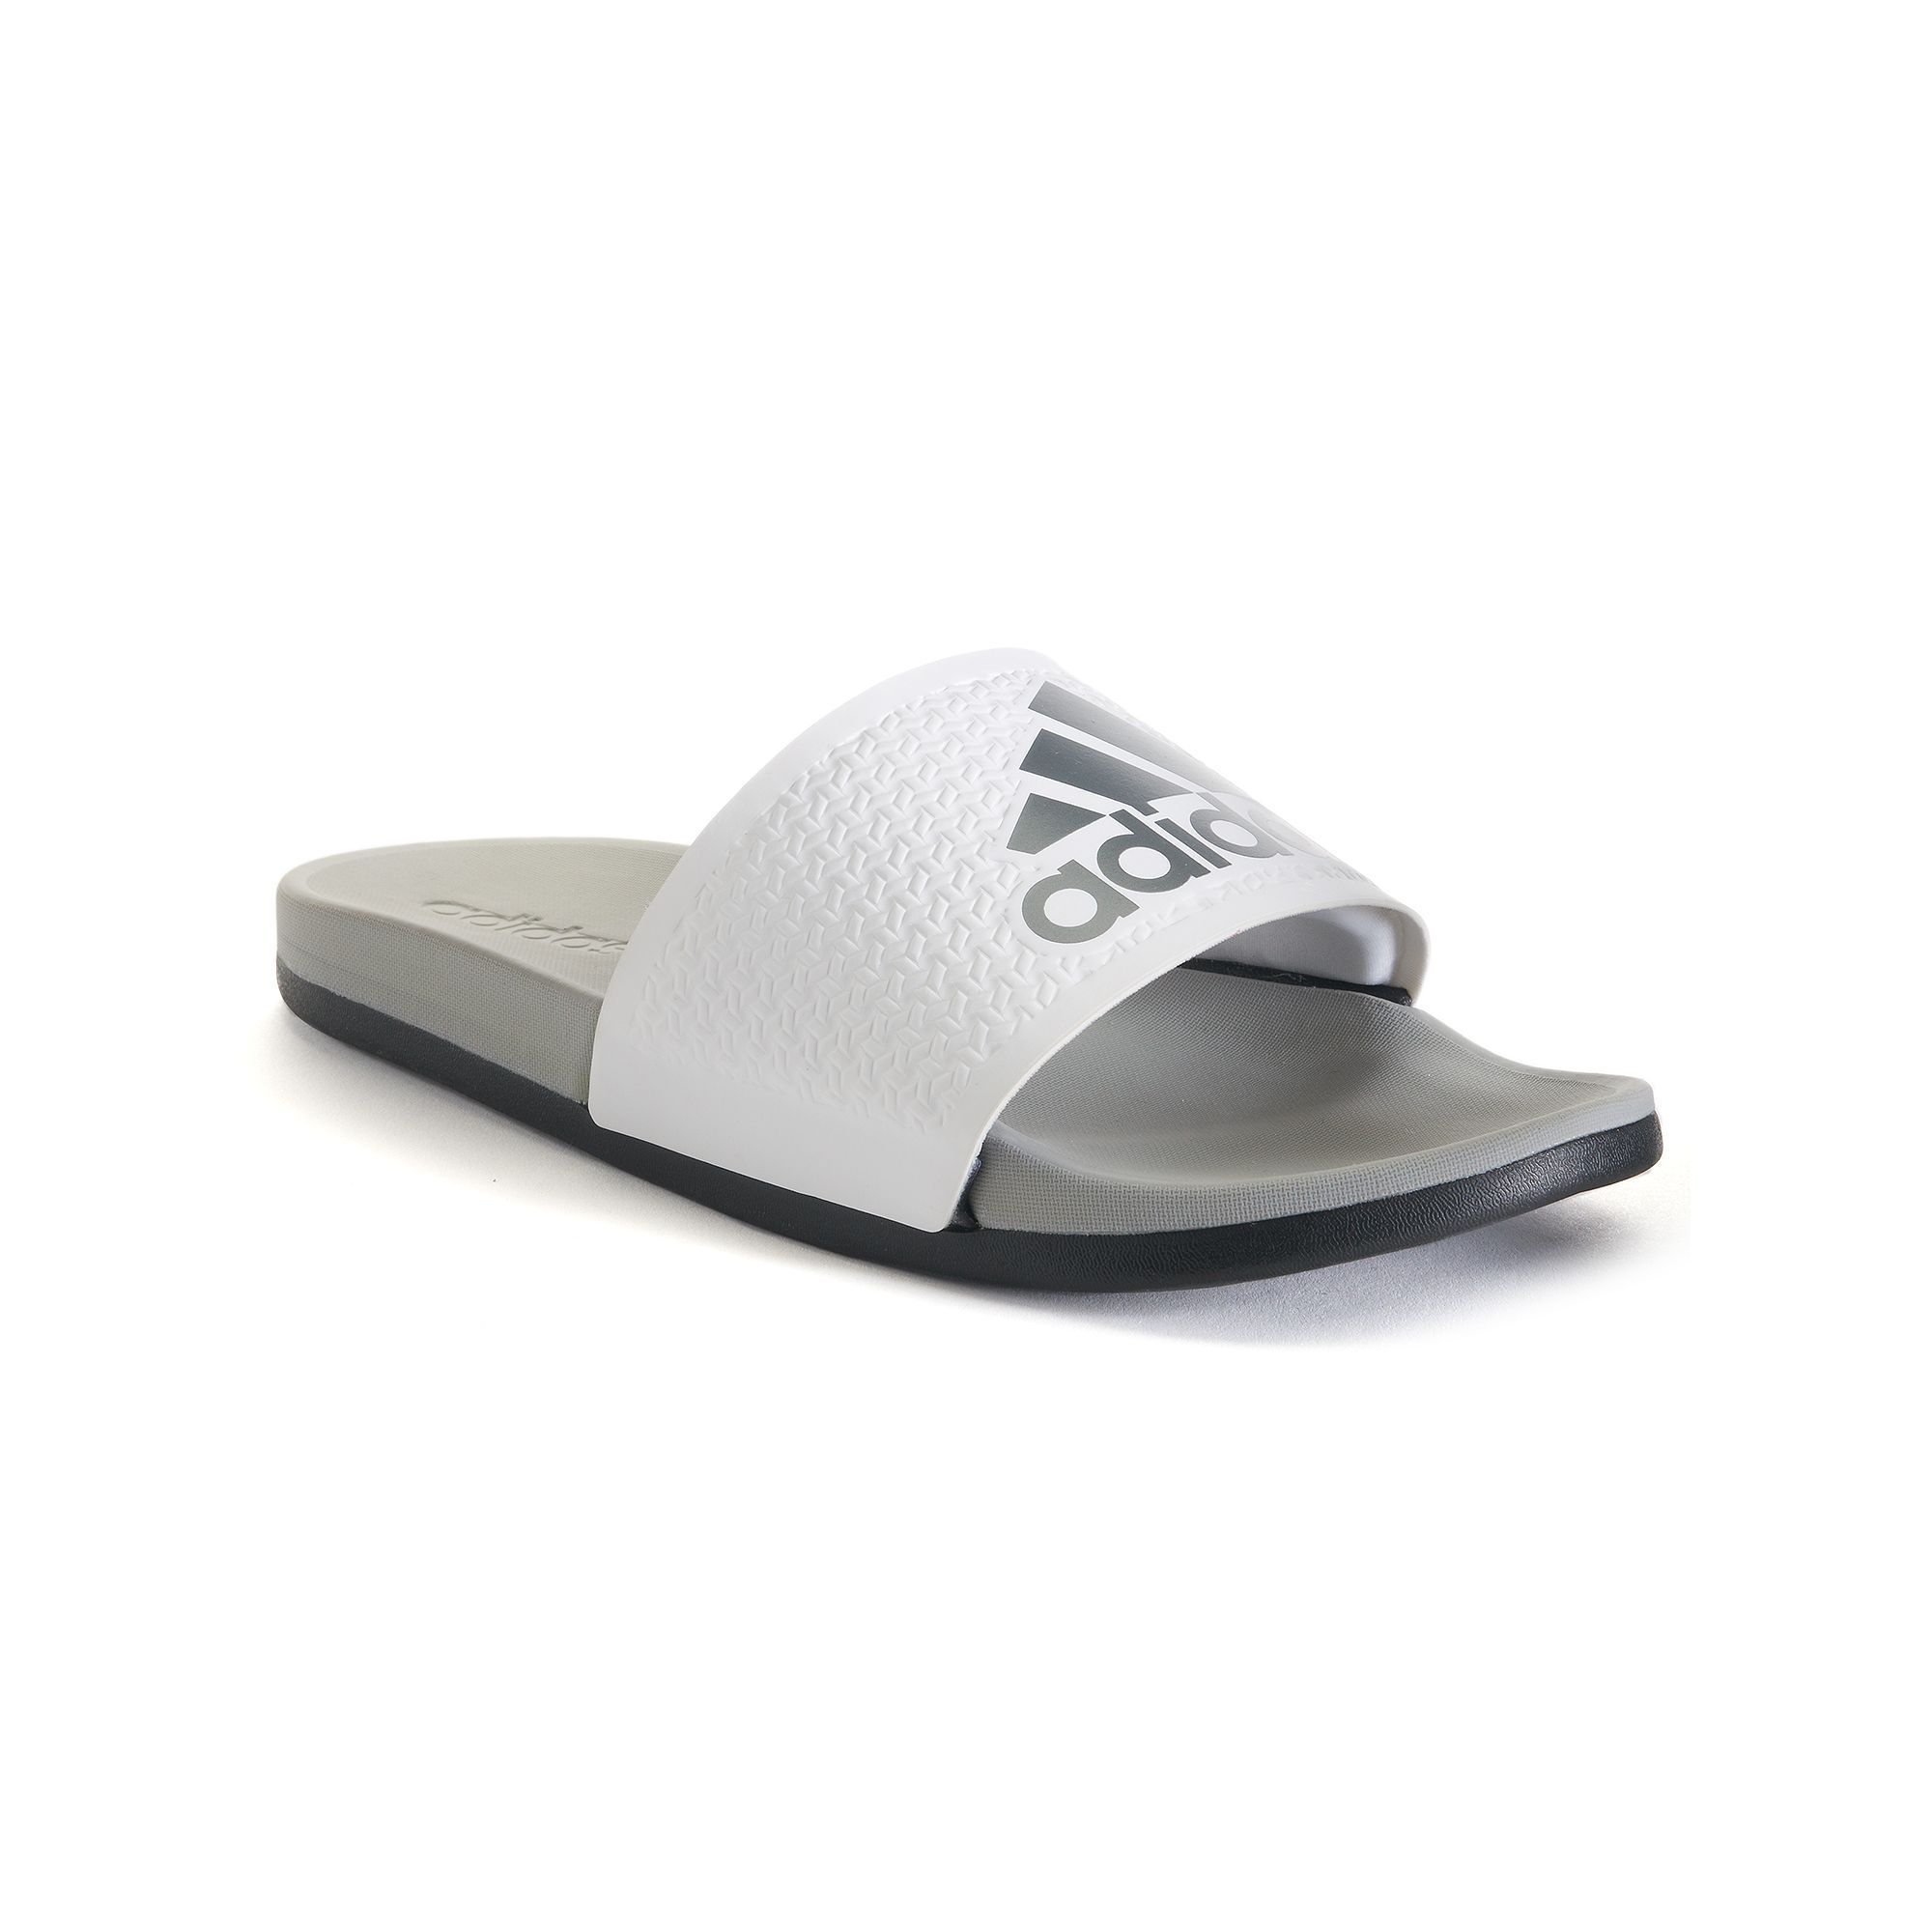 the best attitude 23f1f 64d77 Adidas Adilette Supercloud Plus Men s Slide Sandals, Size  12, White